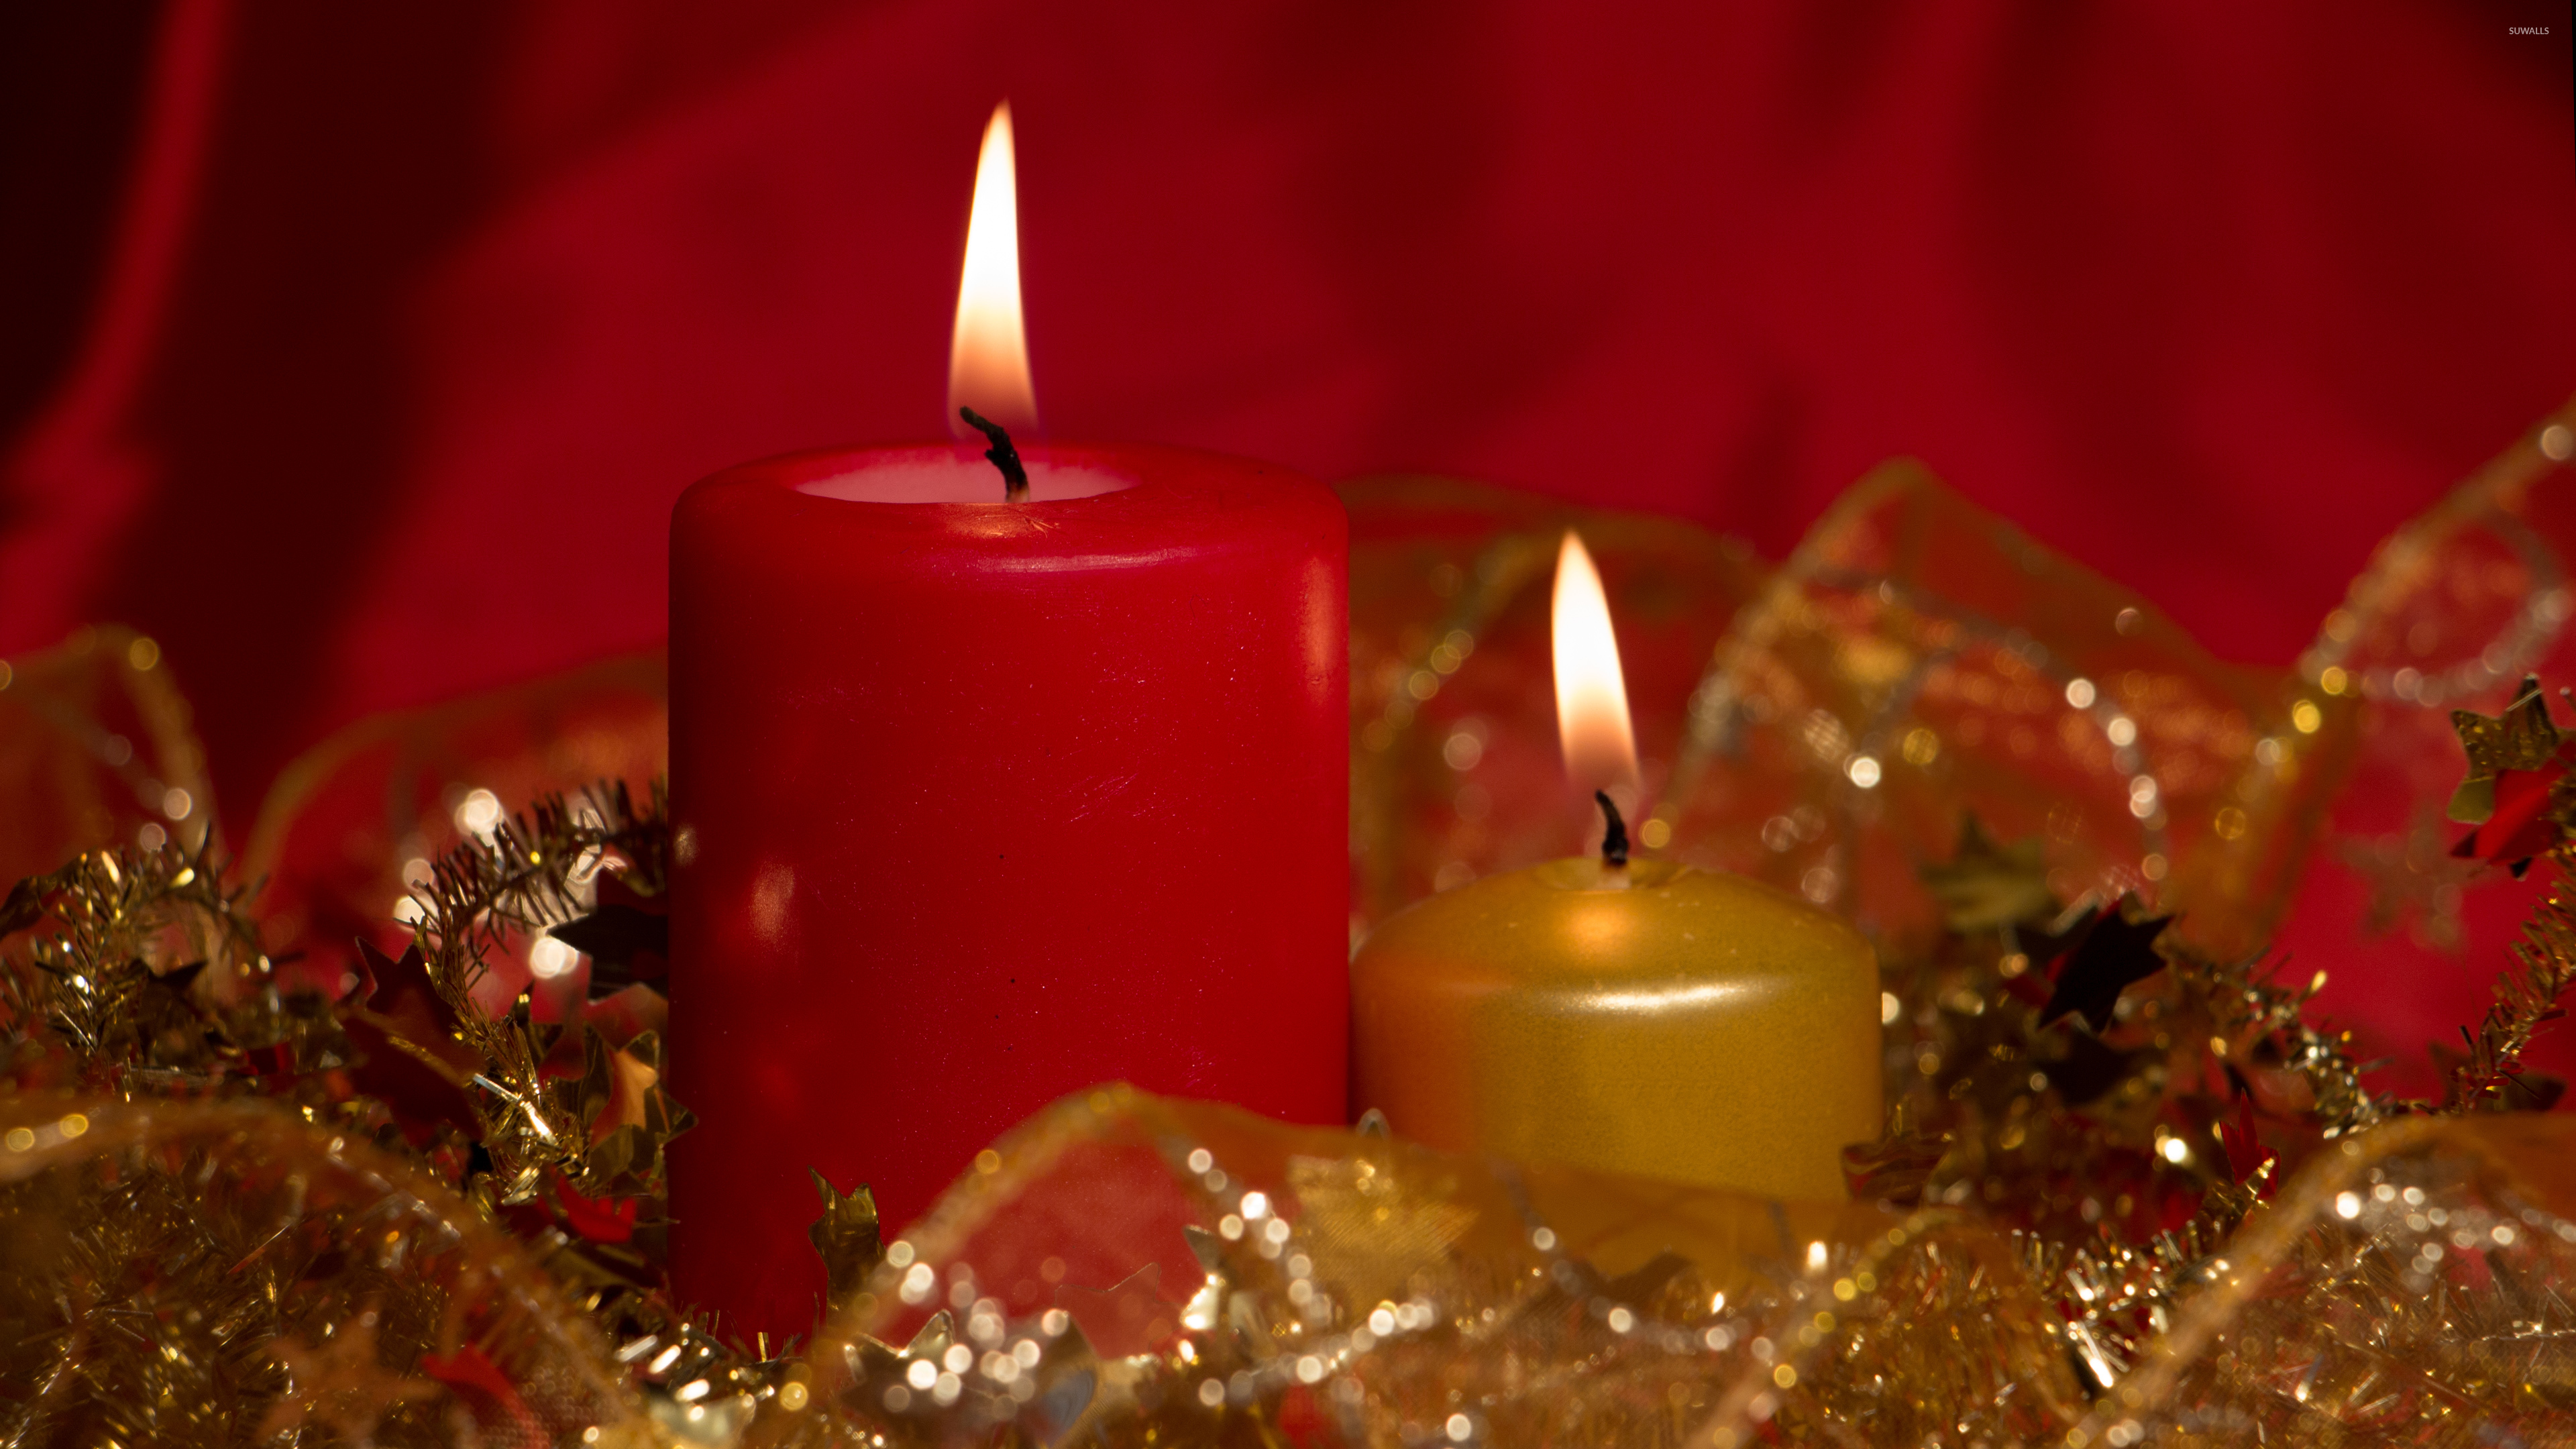 Red And Golden Christmas Candles Wallpaper Holiday